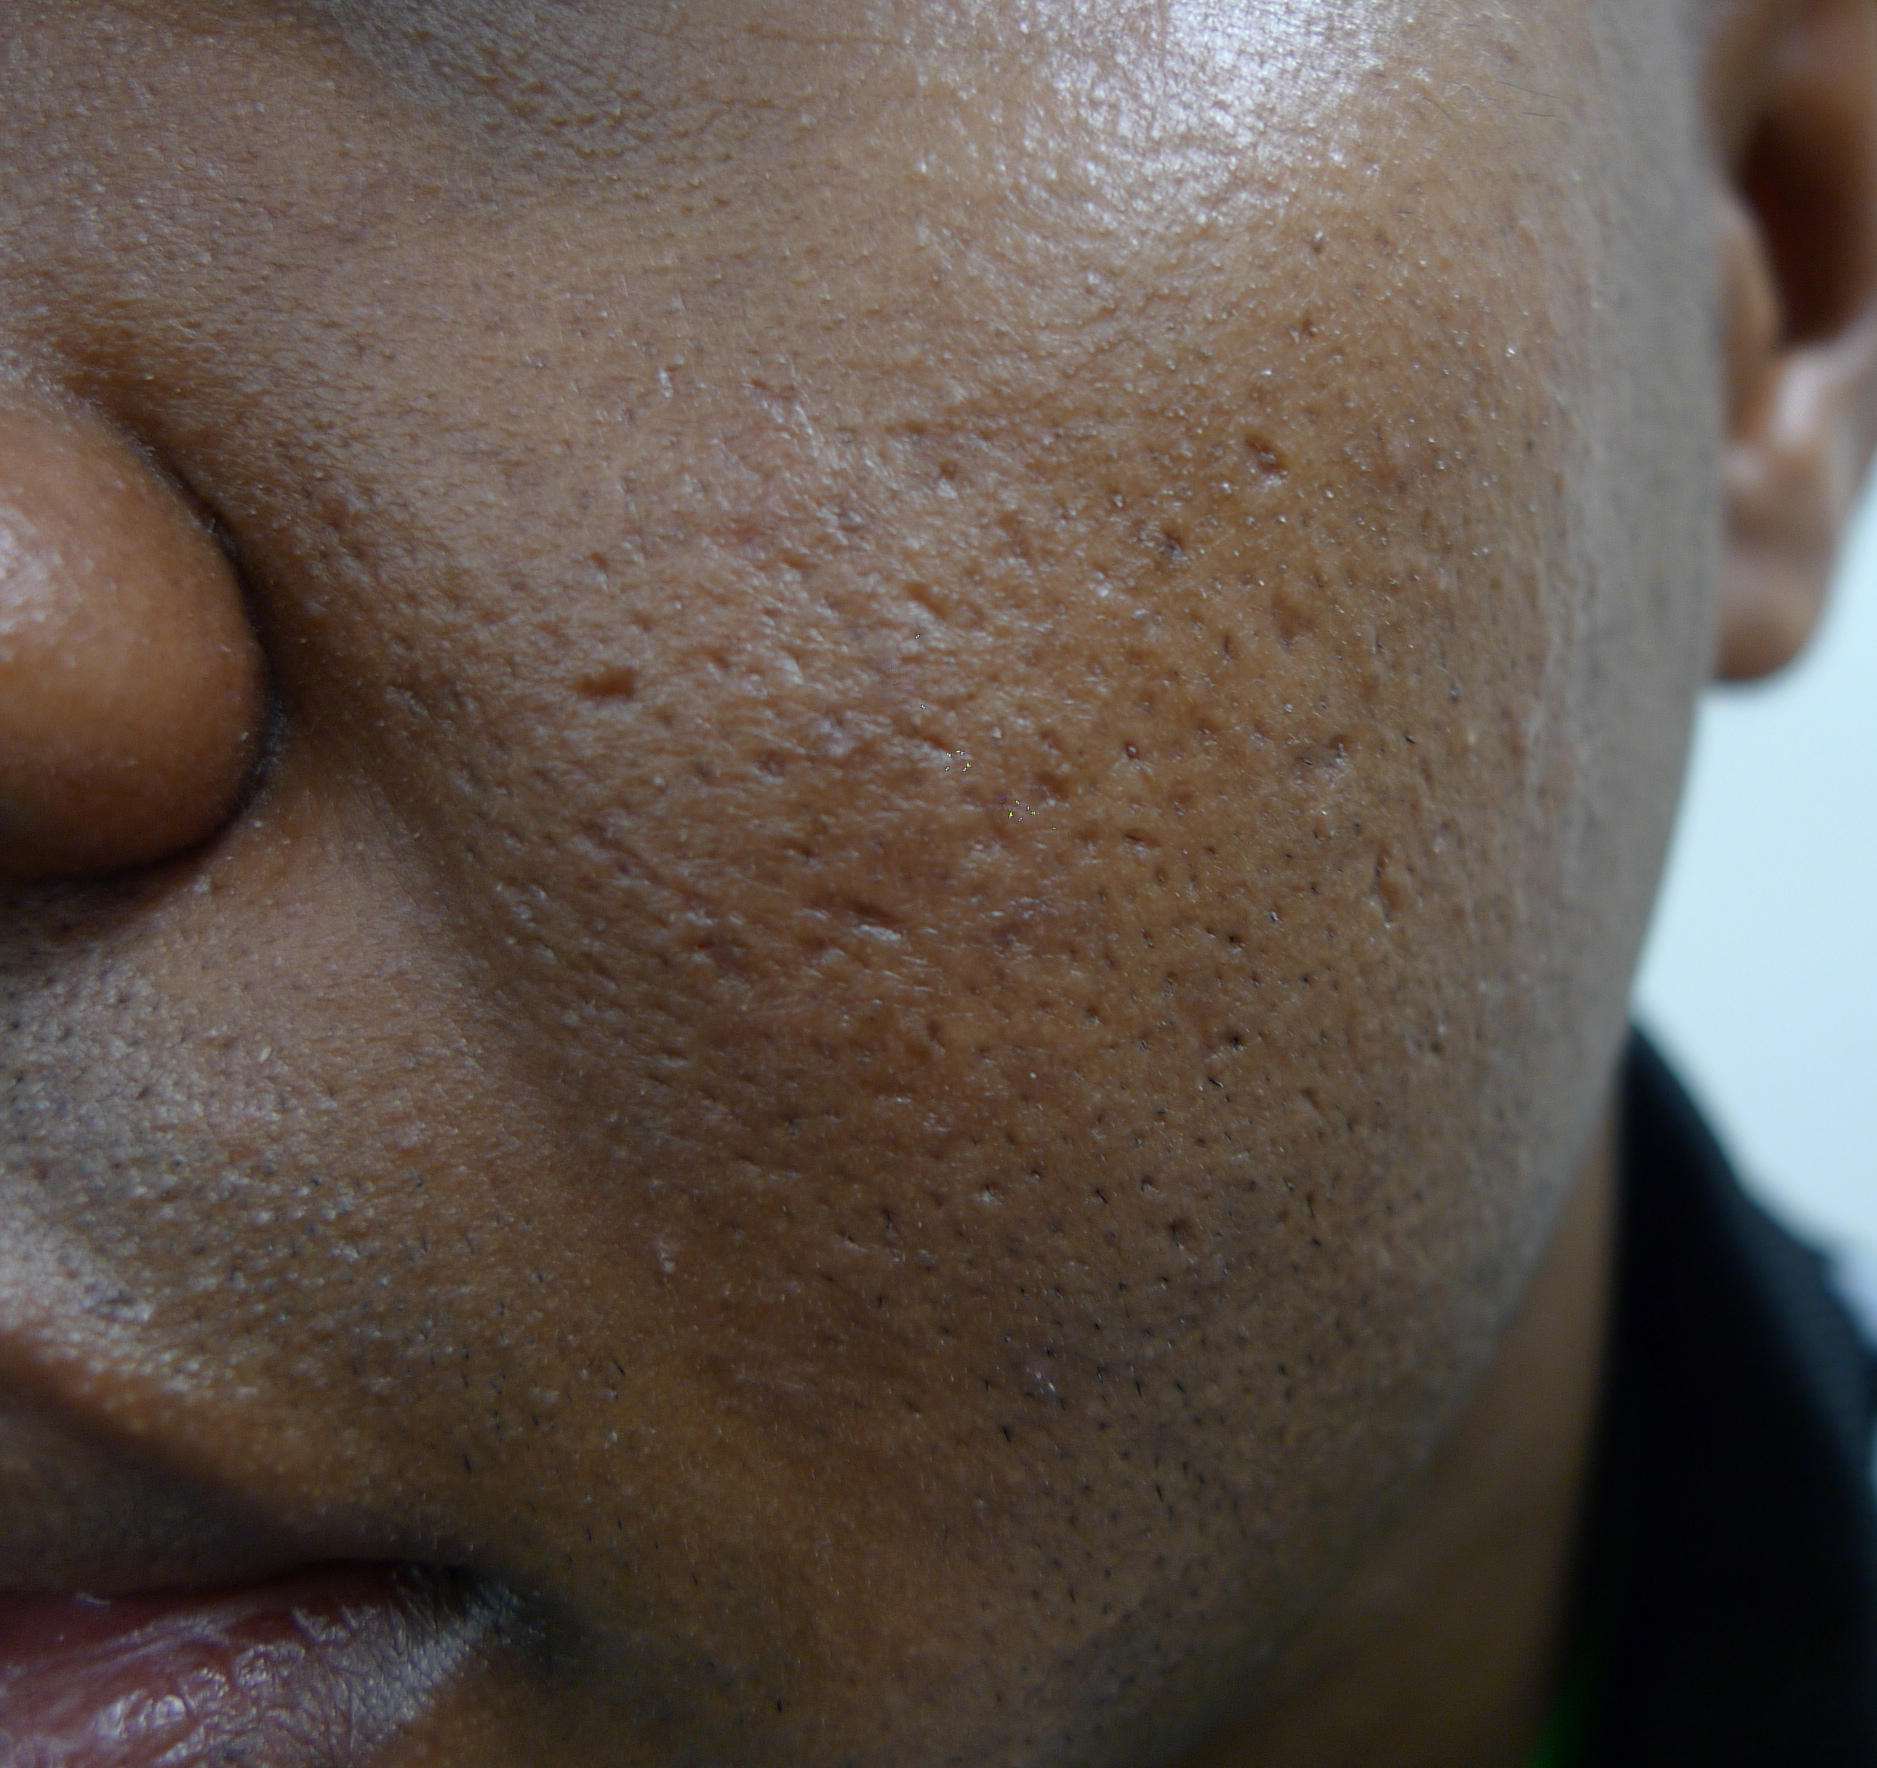 ACD A-Z of Skin - Acne scars (acne scarring)